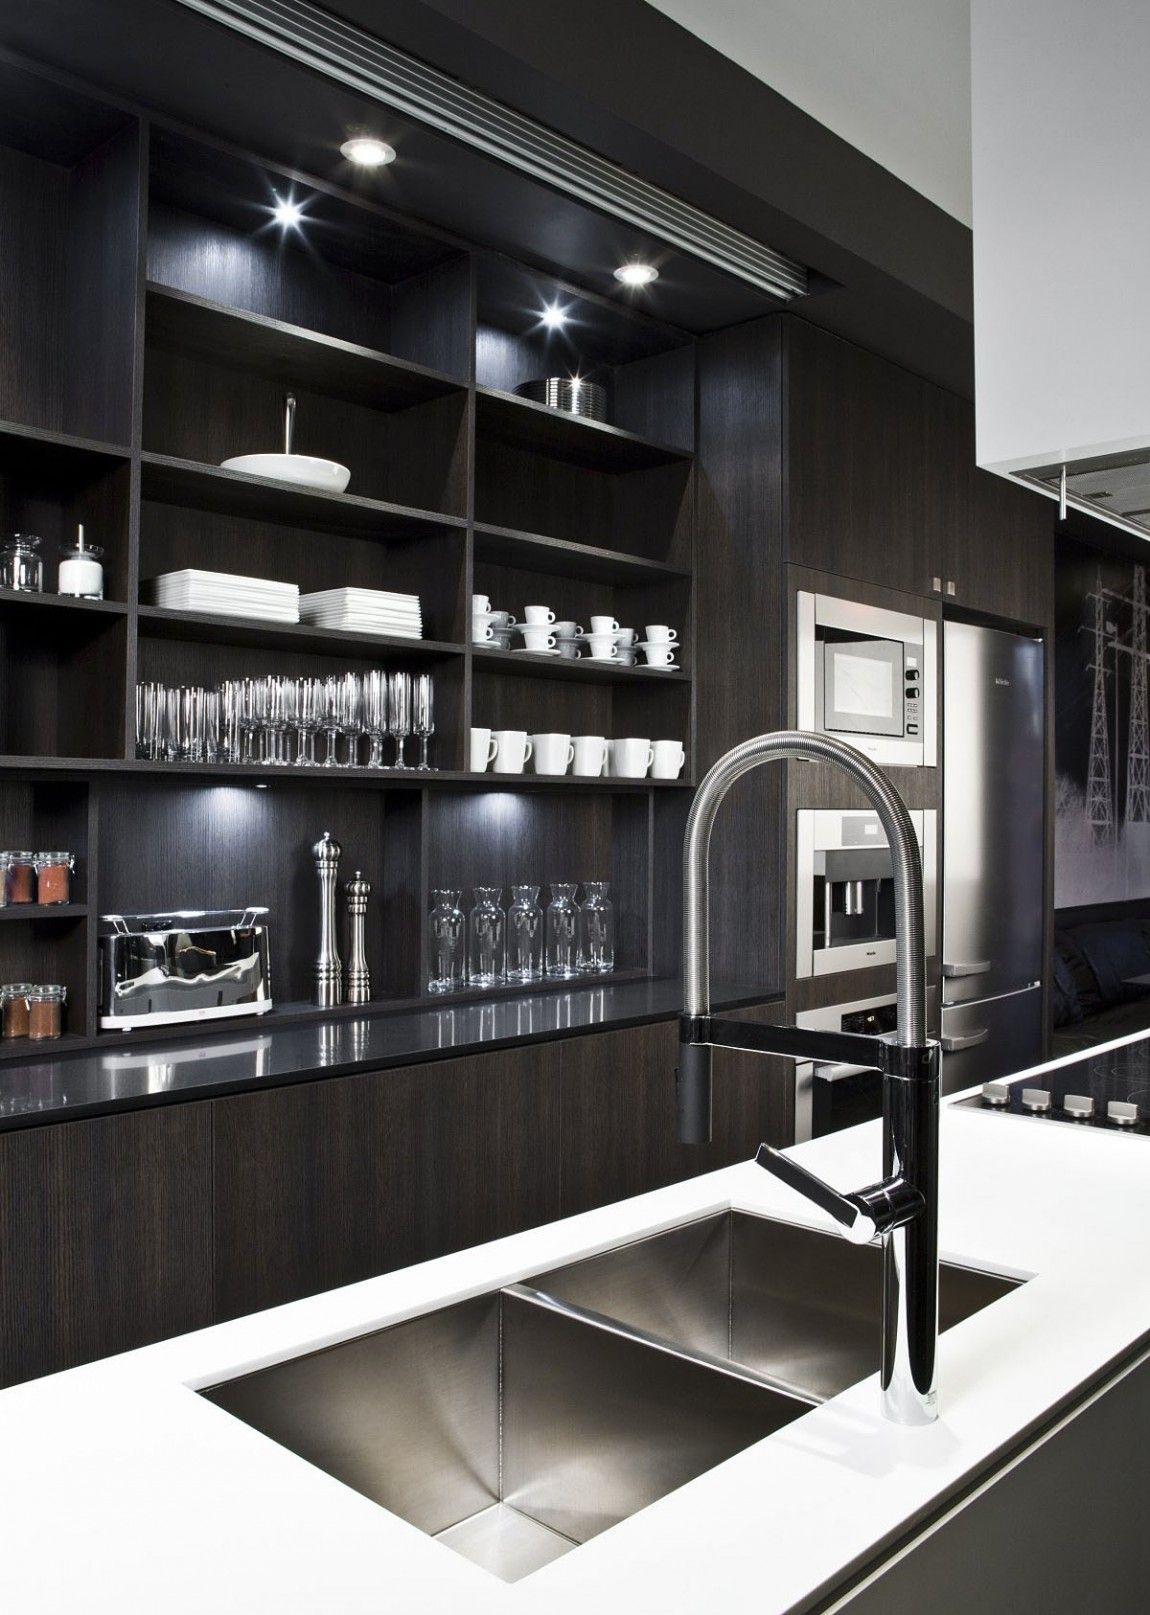 Block Townhouse By Cecconi Simone 11 Homedsgn Townhouse Interior Masculine Kitchen Kitchen Design Small